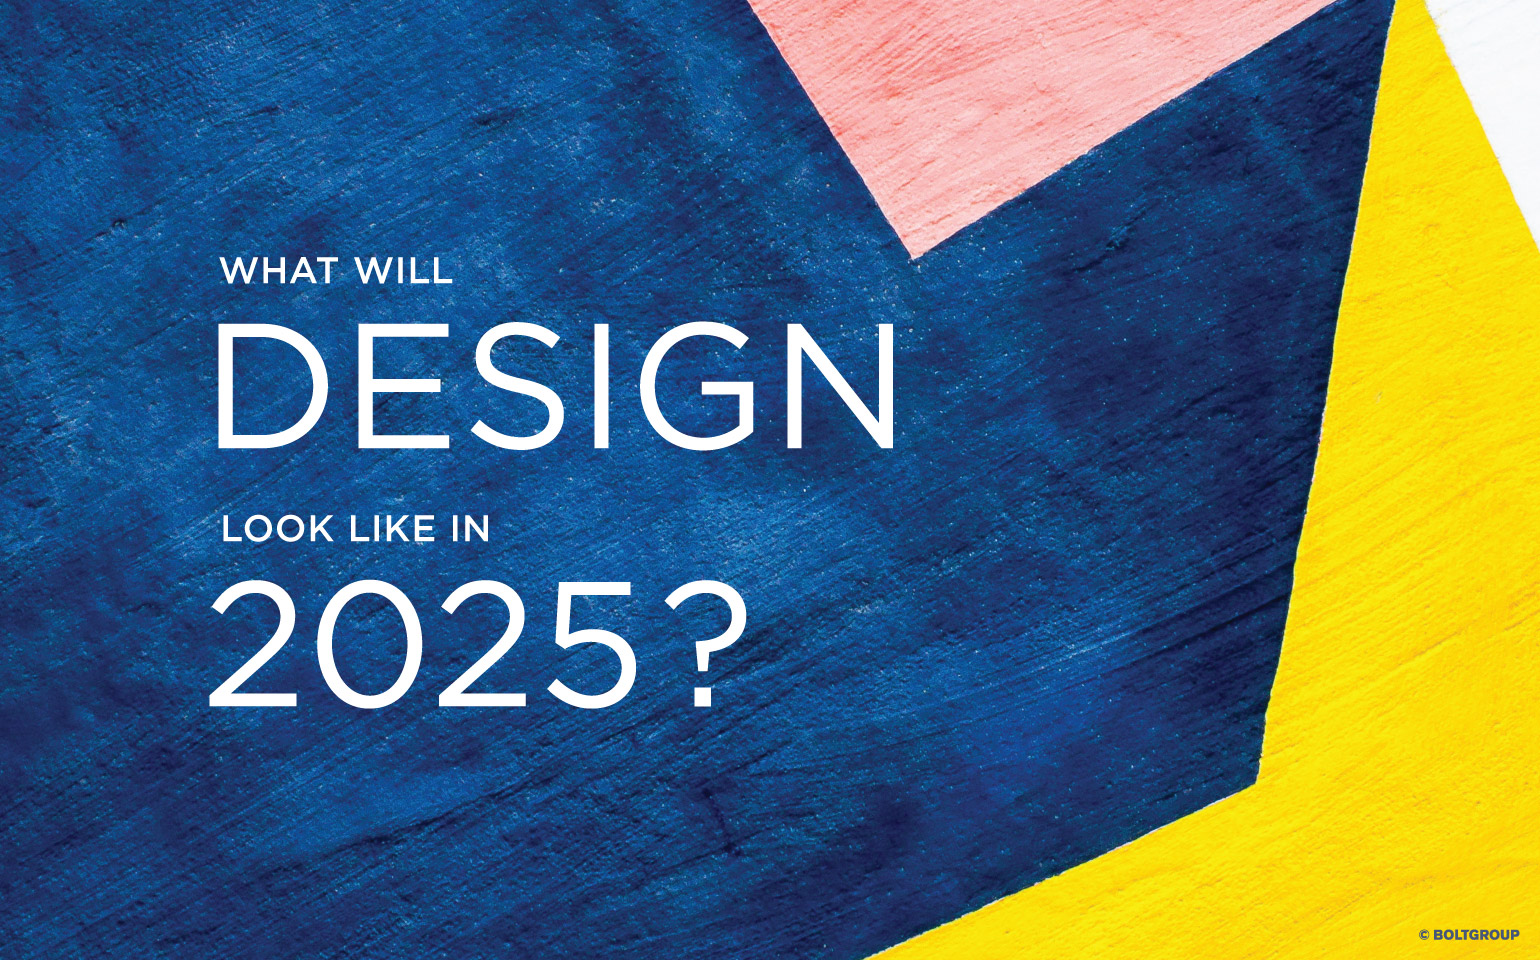 What Will Design Look Like in 2025